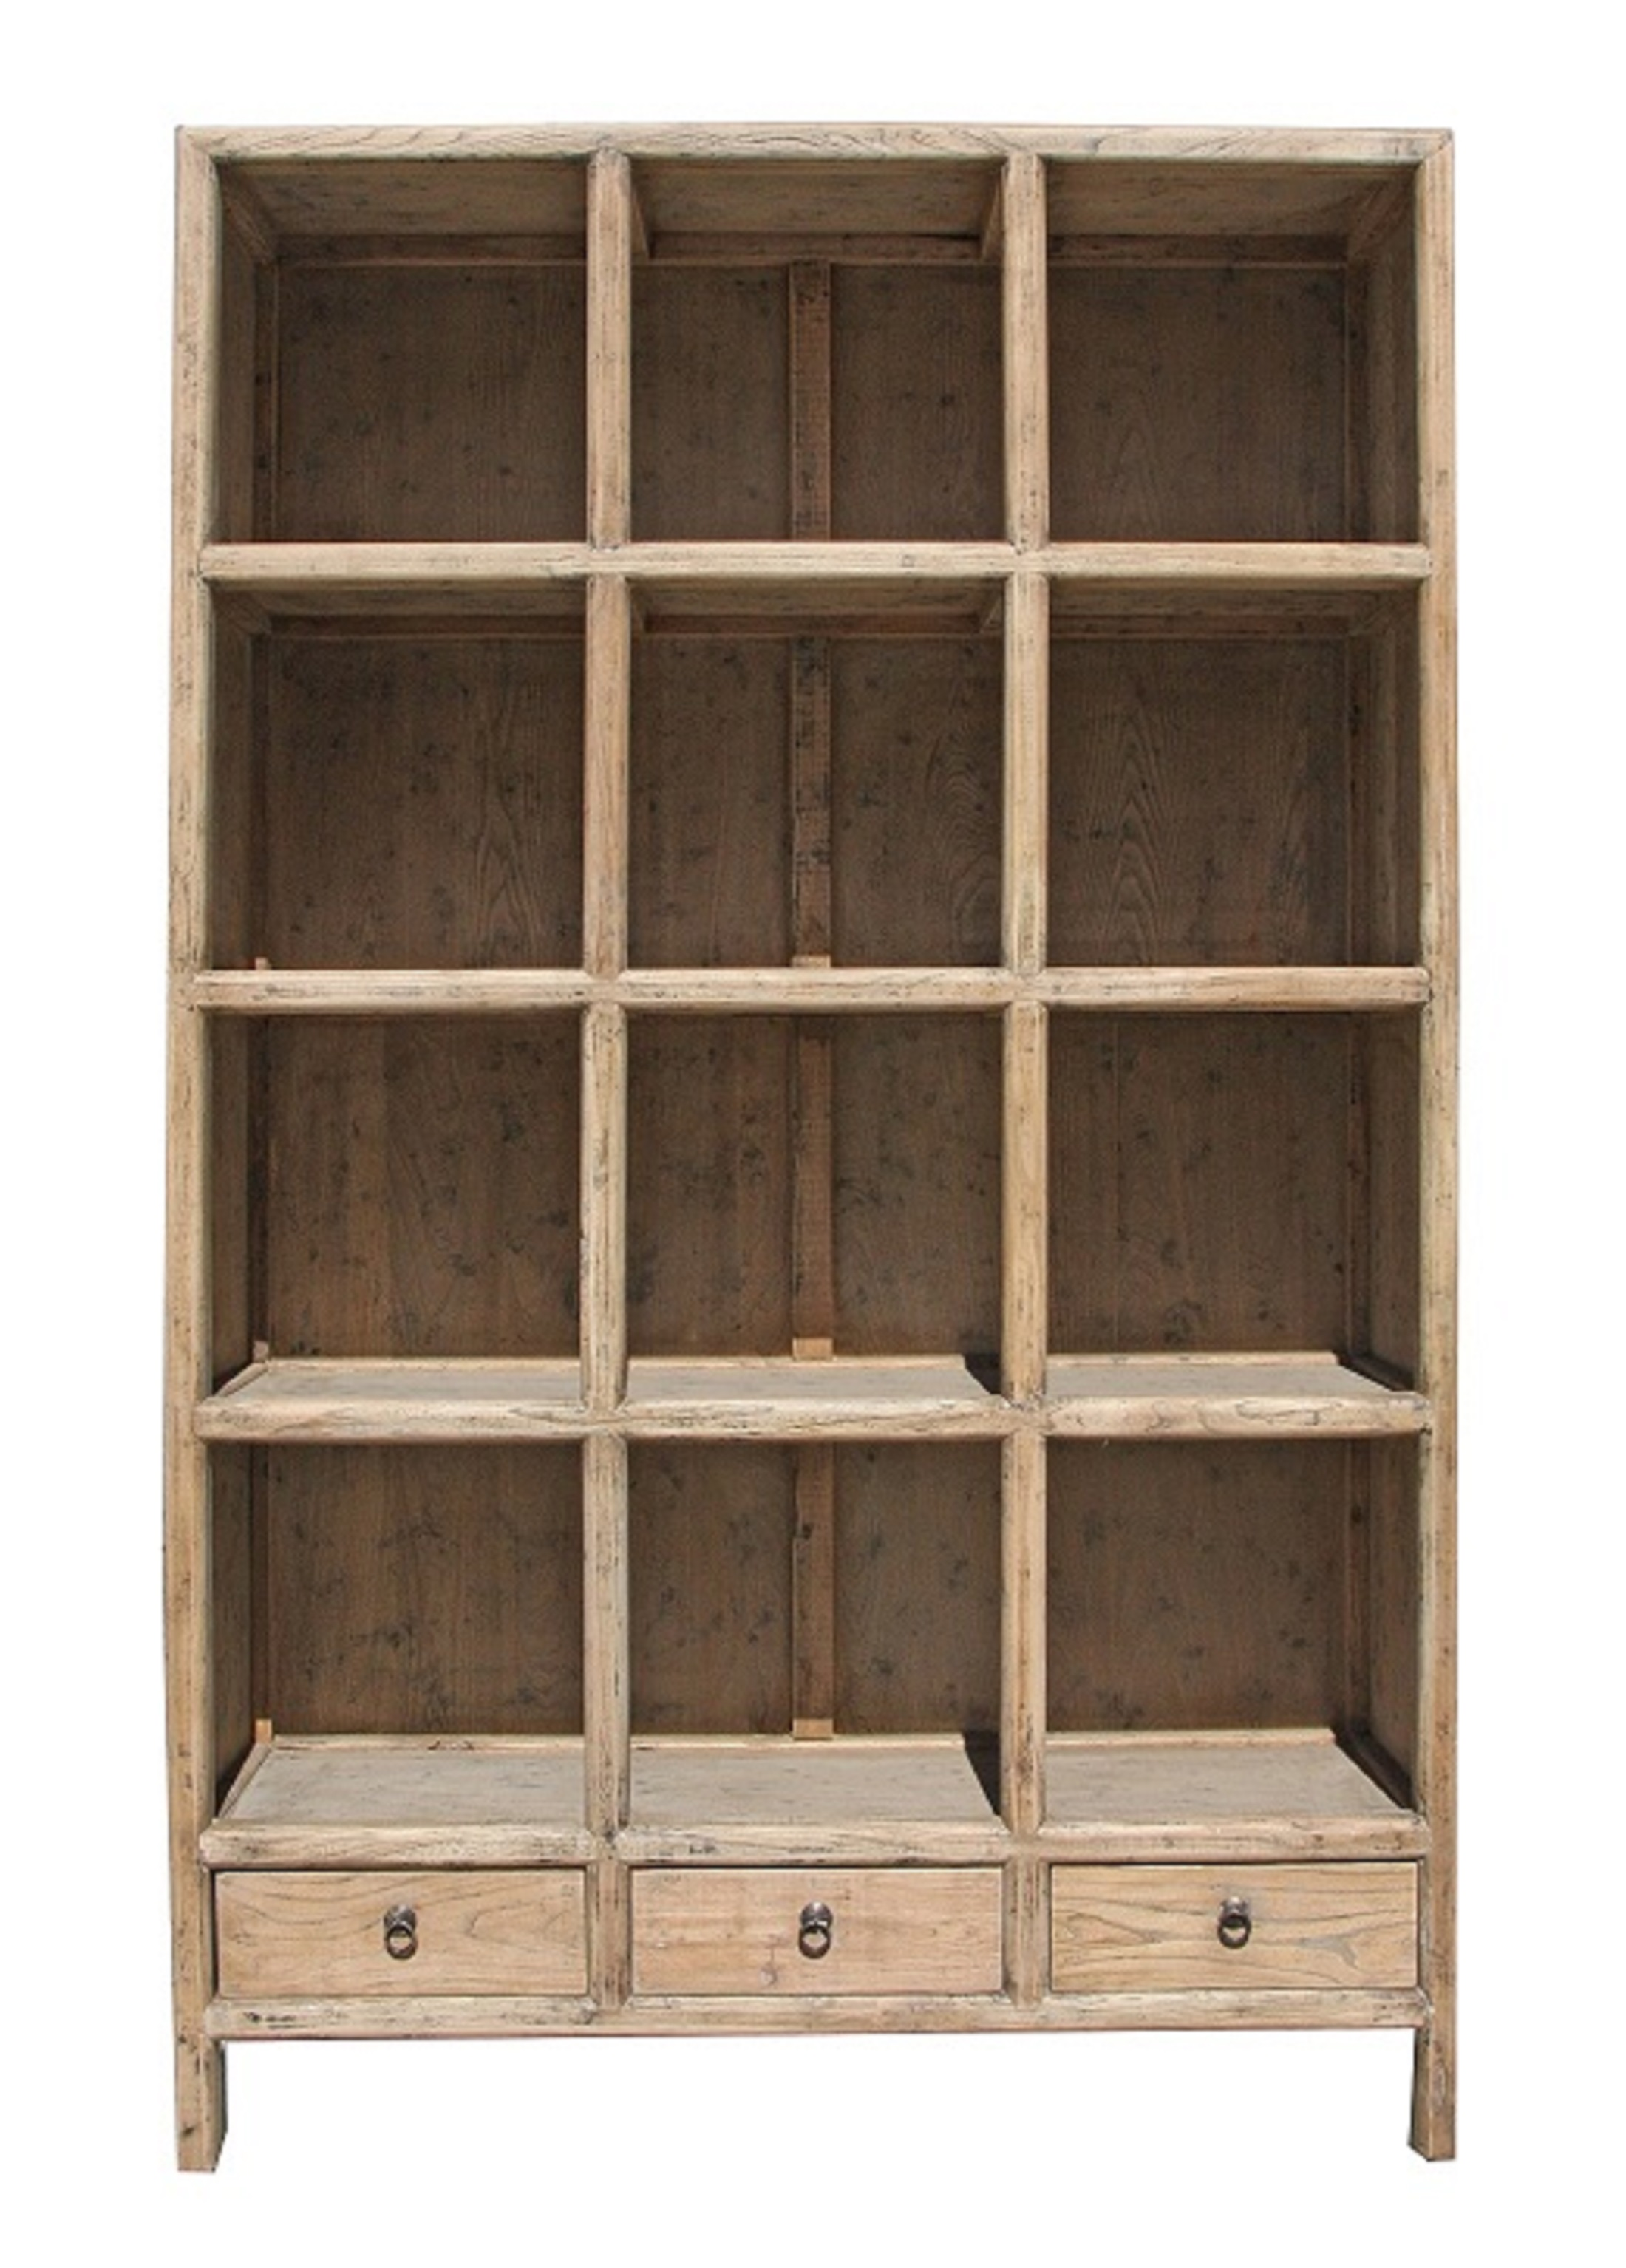 Bordeaux Cube Display Unit